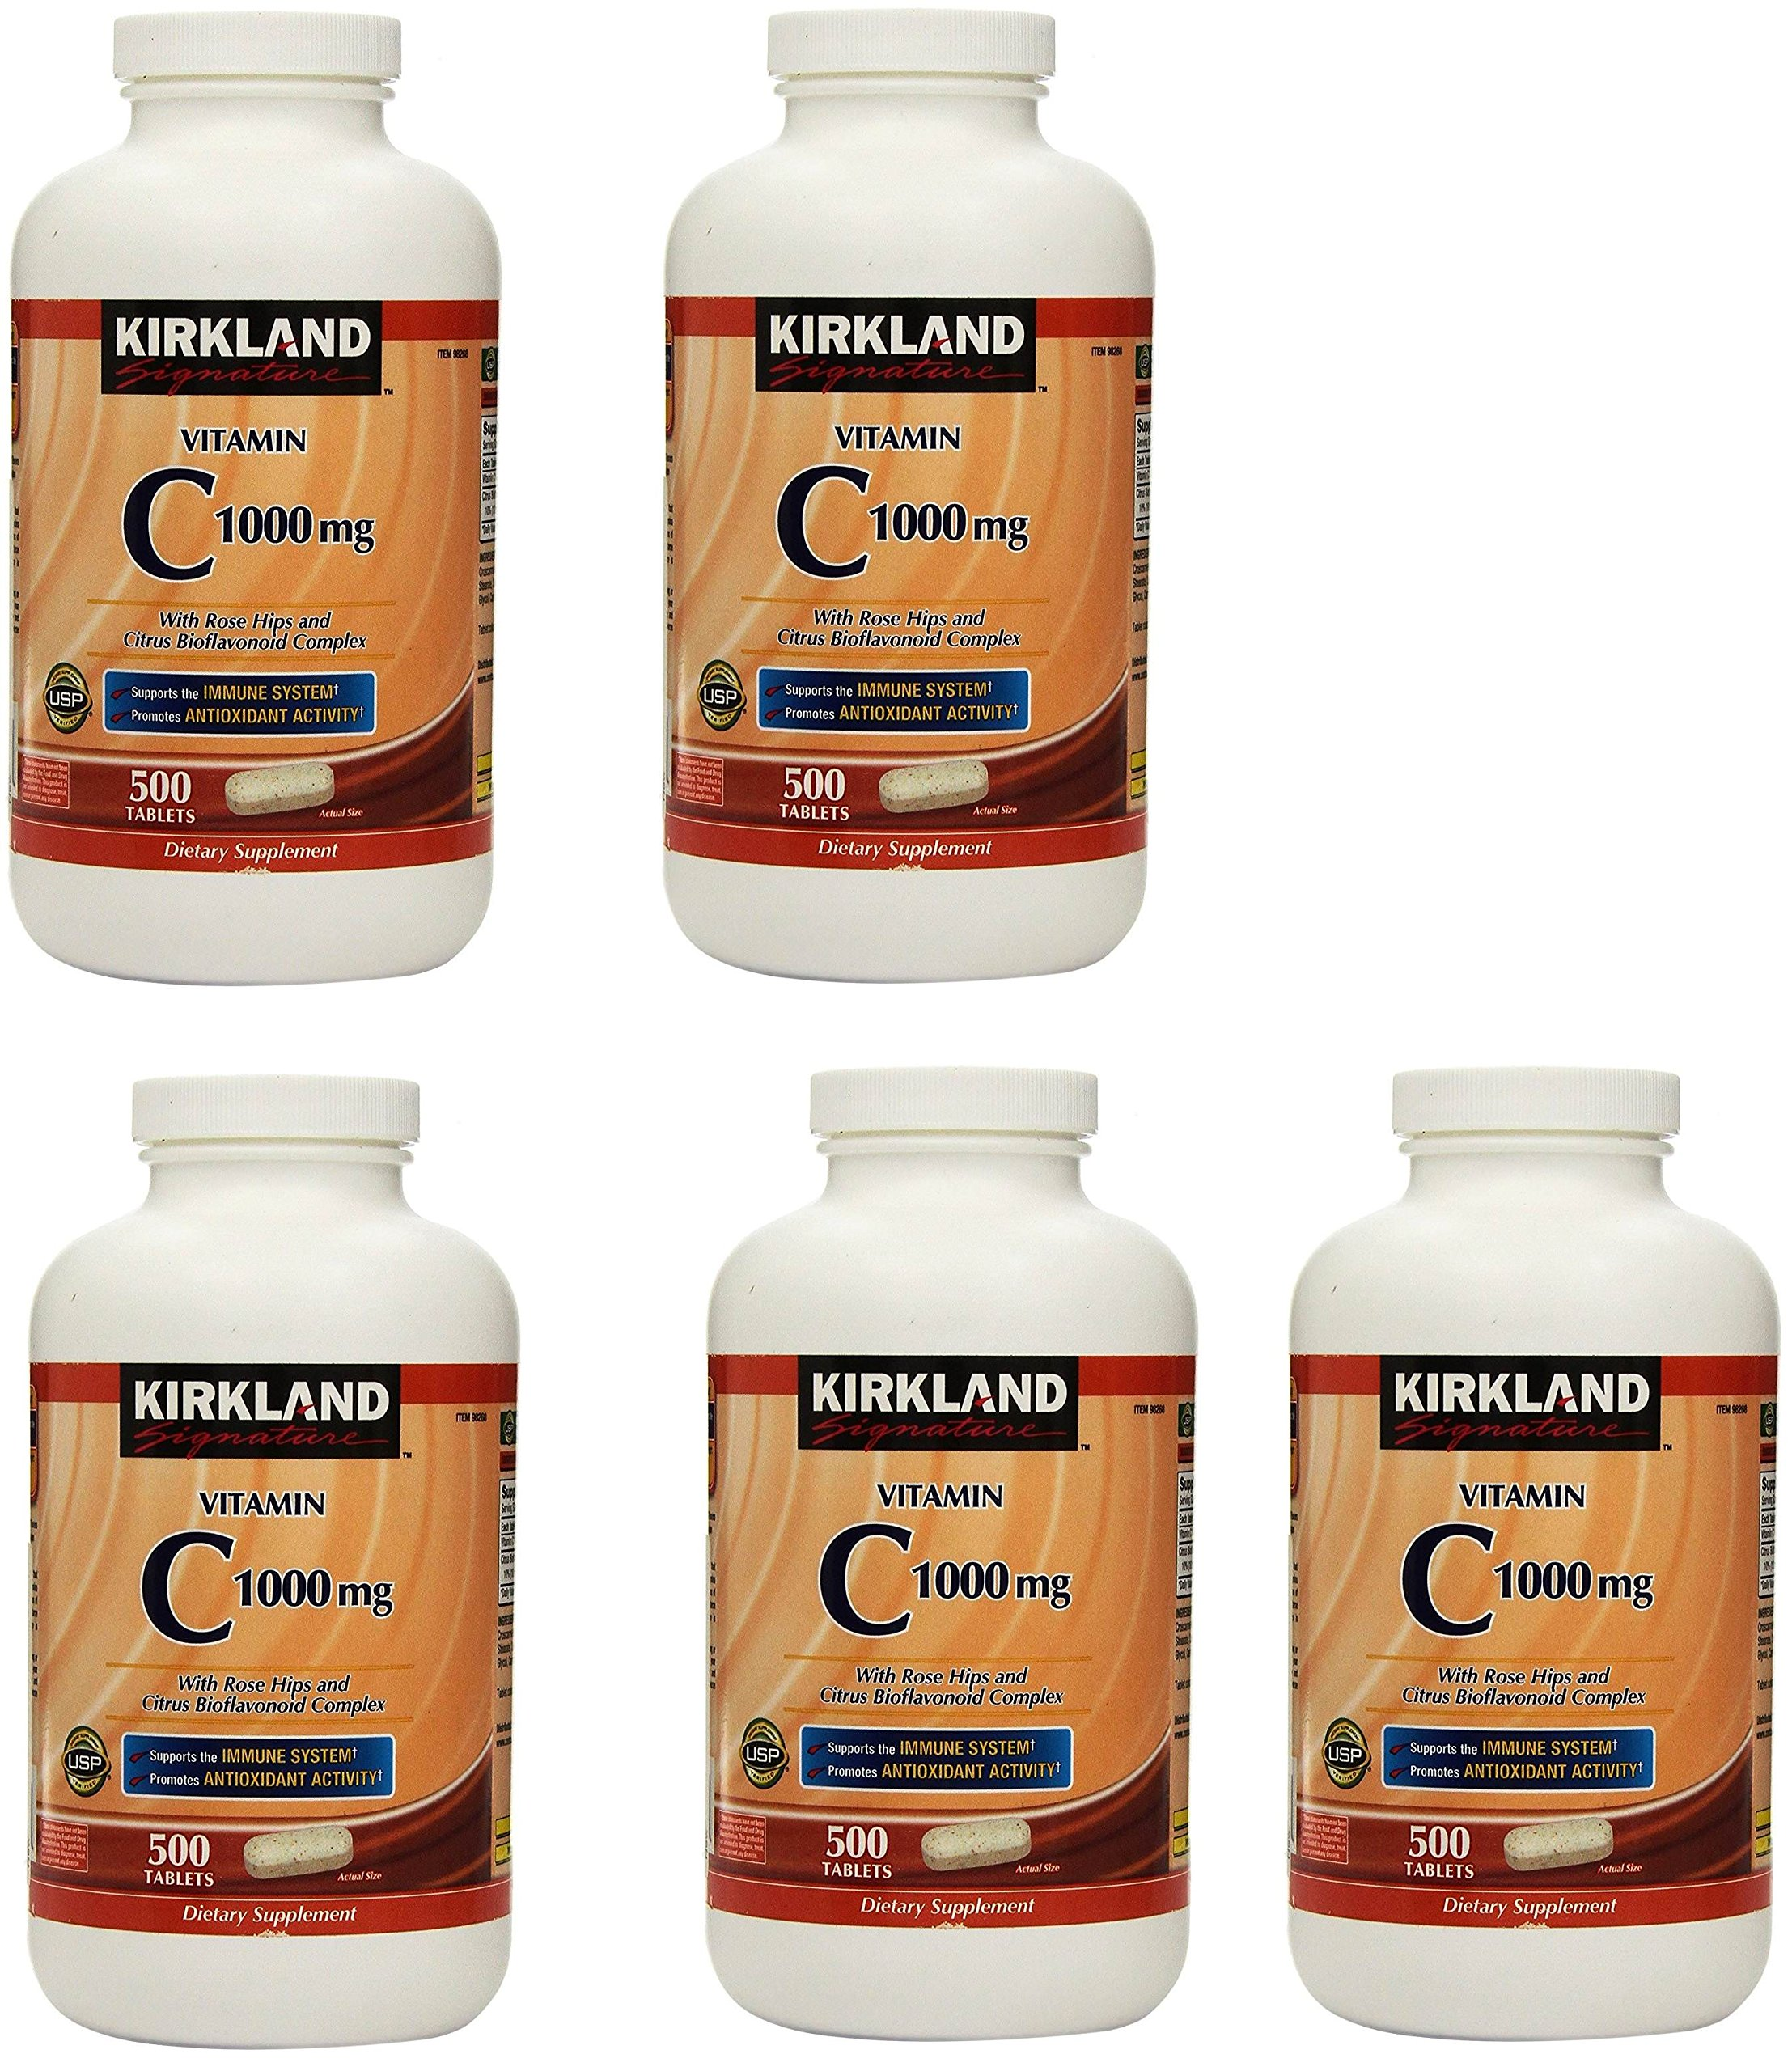 Kirkland Vitamin C with Rose Hips and Citrus Bioflavonoid Complex (1000 mg), 5 Bottles (500 Count Tablets)